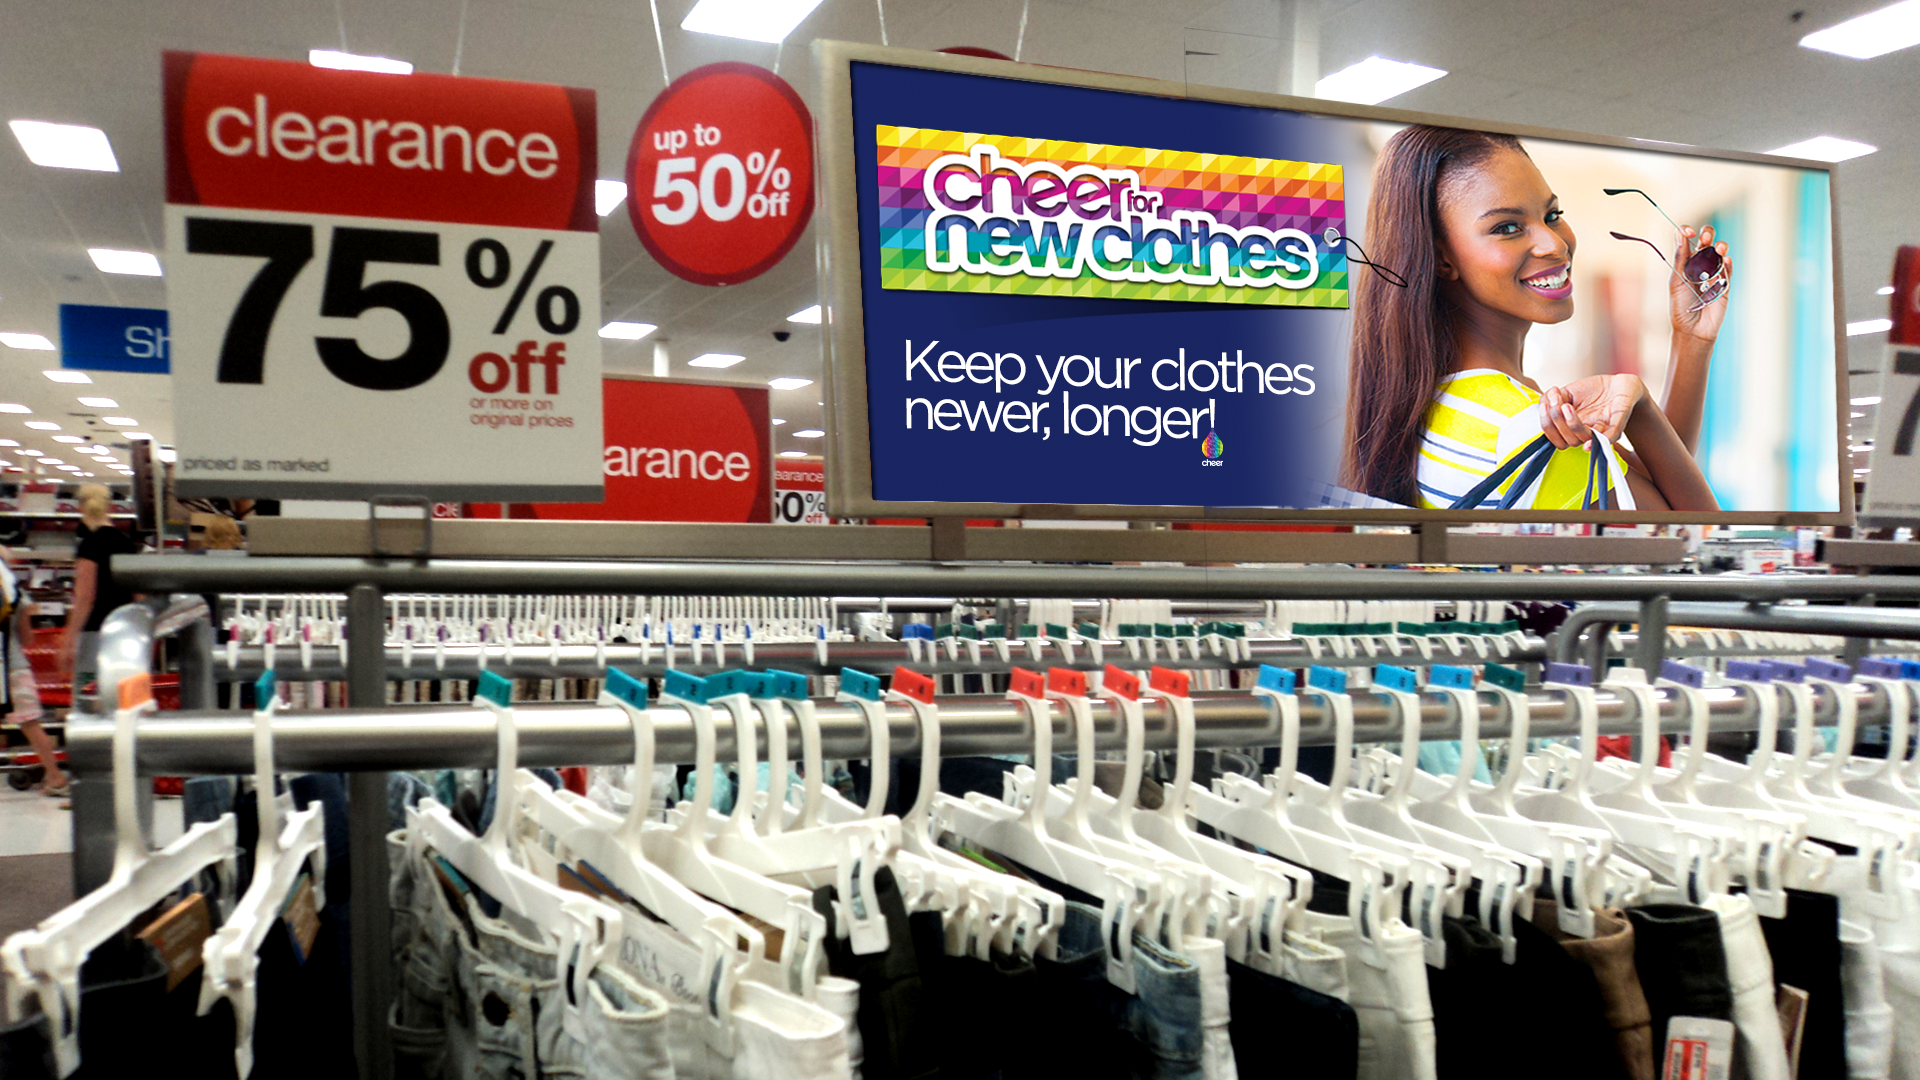 Cheer_-_For_New_Clothes_target.png